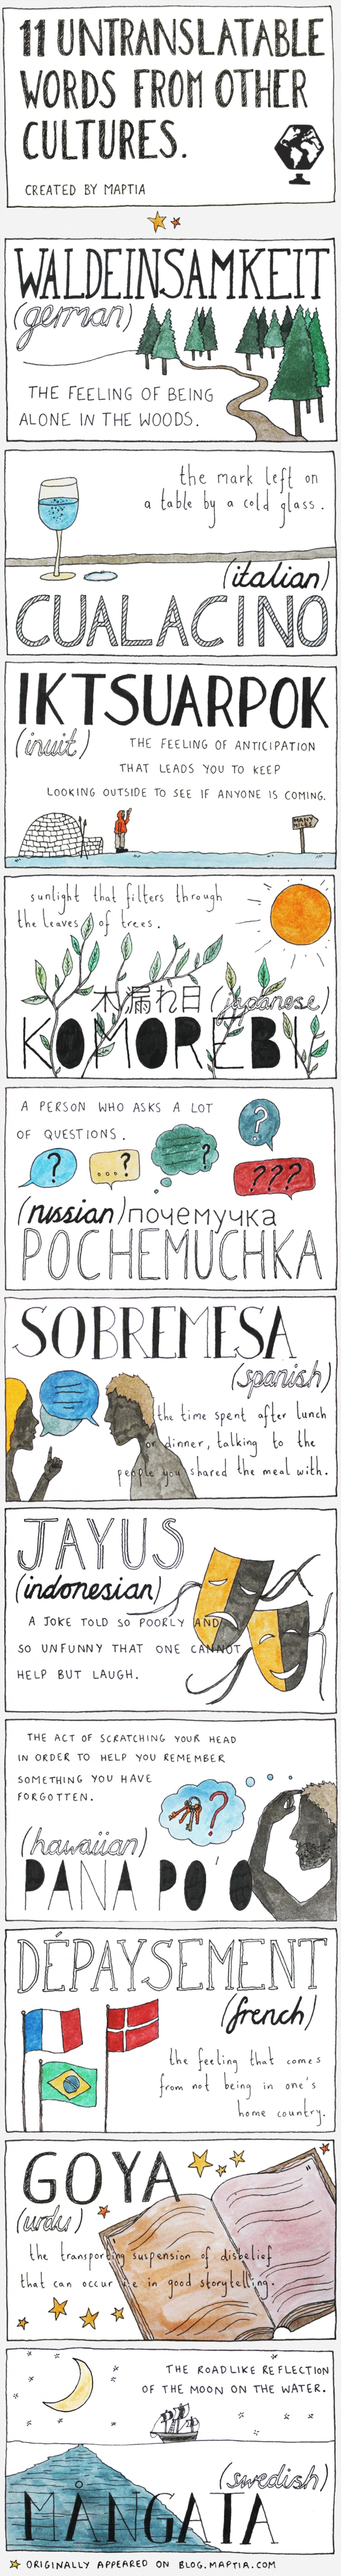 11-untranslatable-words-from-other-cultures_52152bbe65e85_w1500